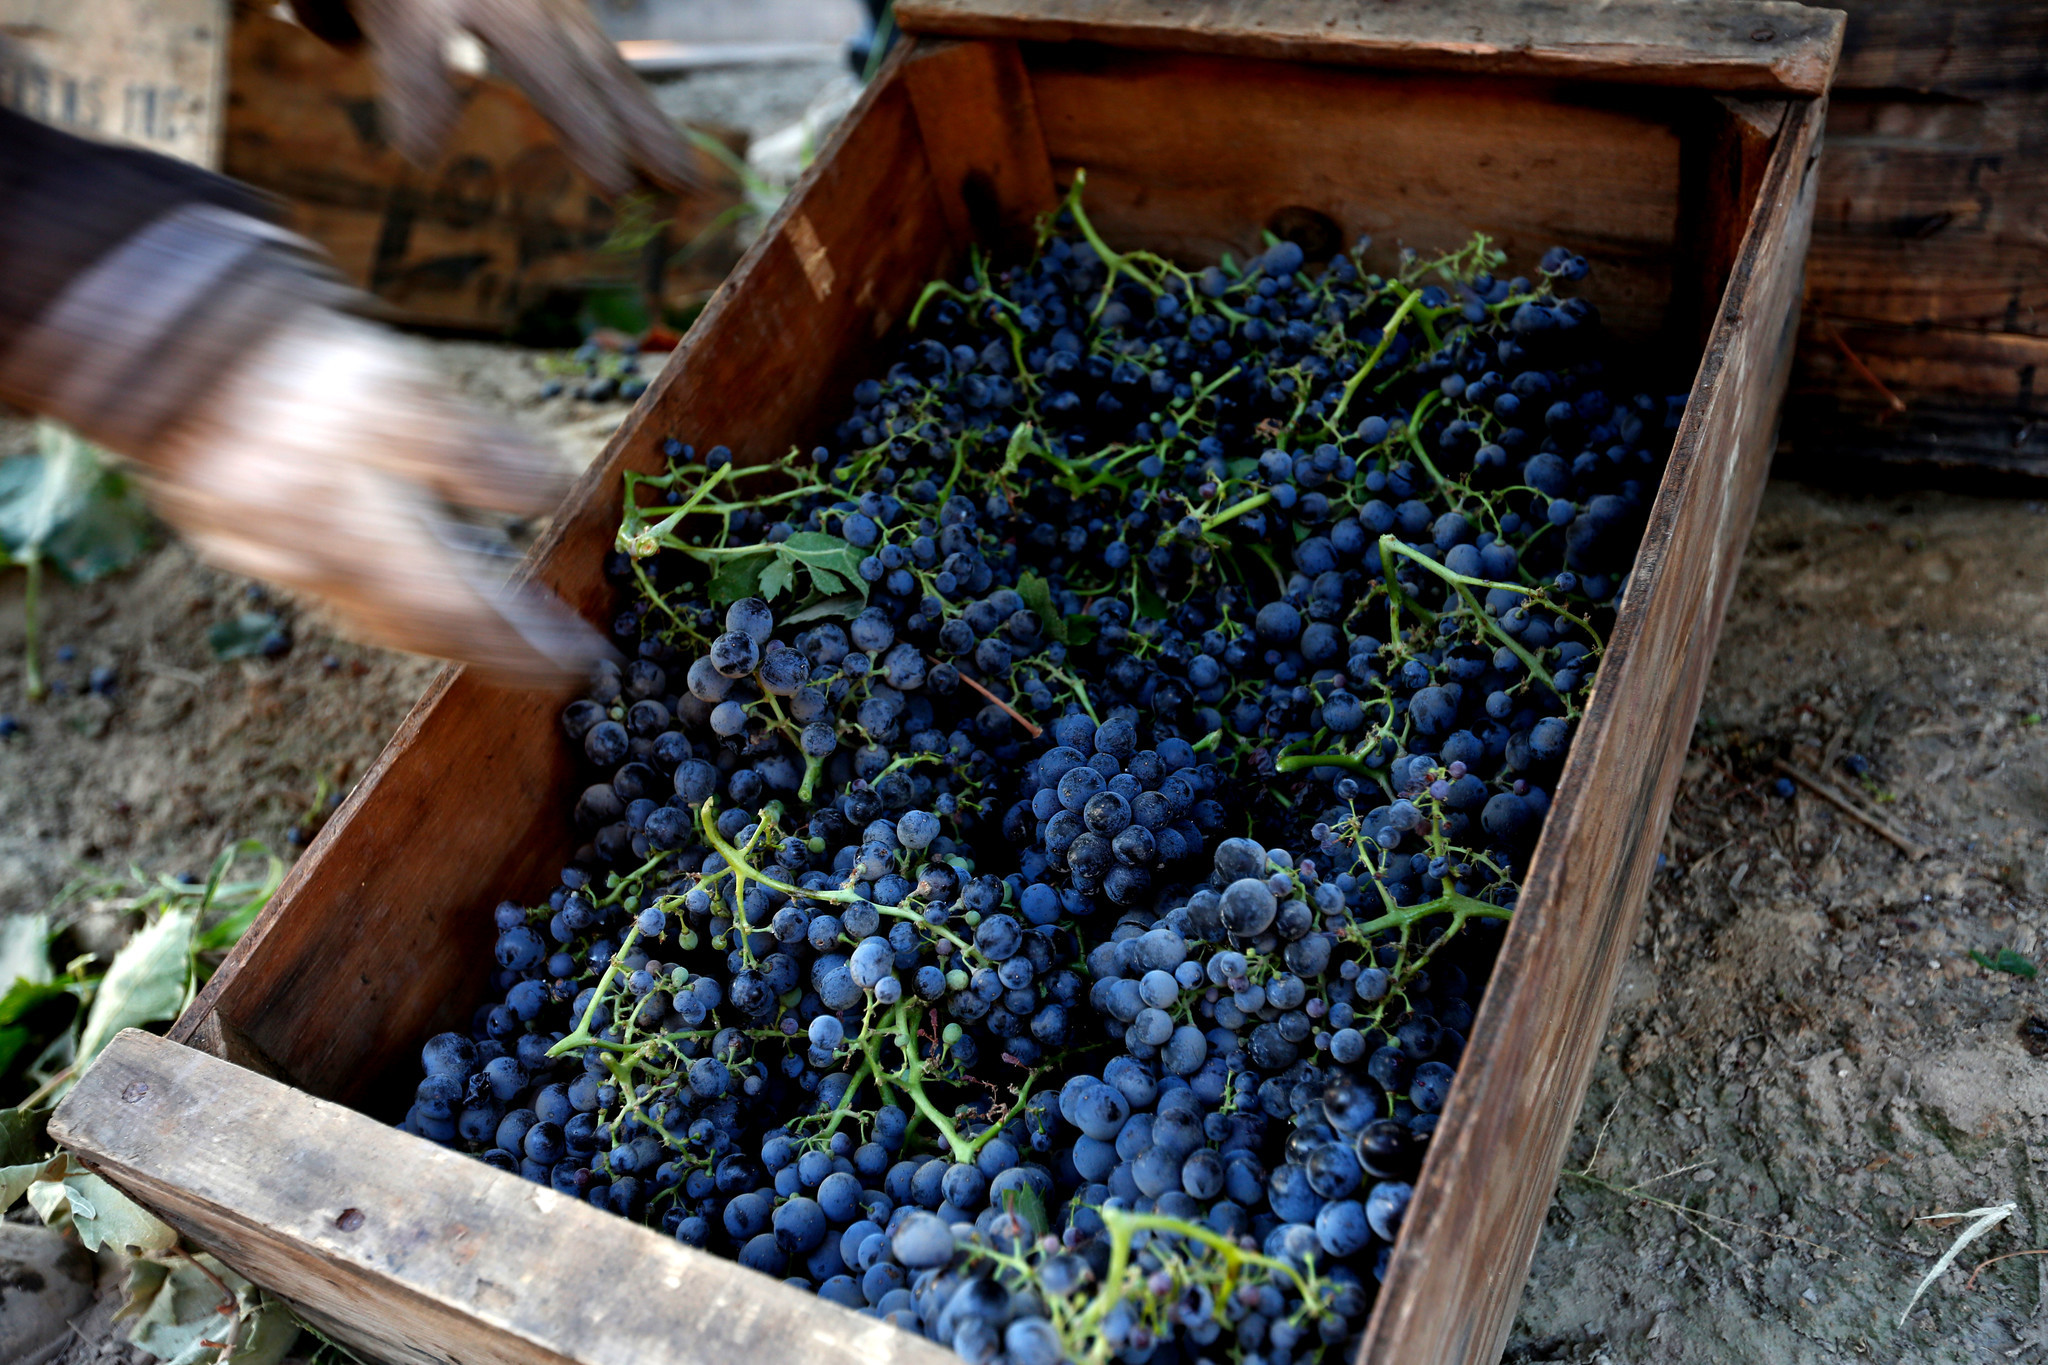 Grapes are gathered in a field in Madera.